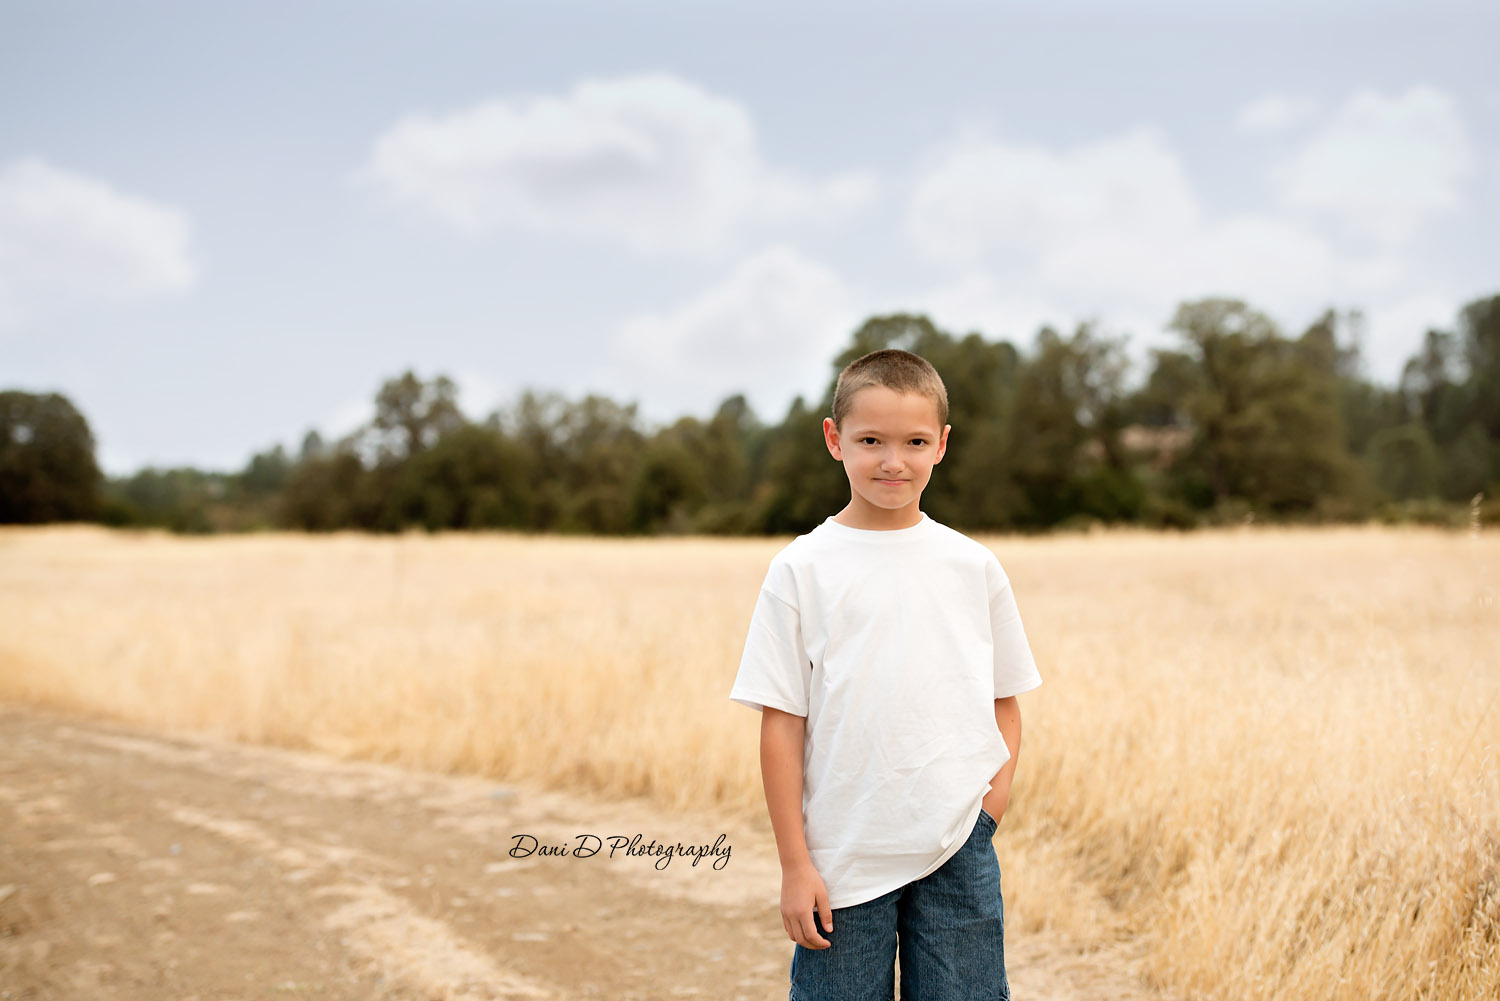 Portrait of a boy in a field - Female child model in field - Redding CA photographer - Dani D Photography